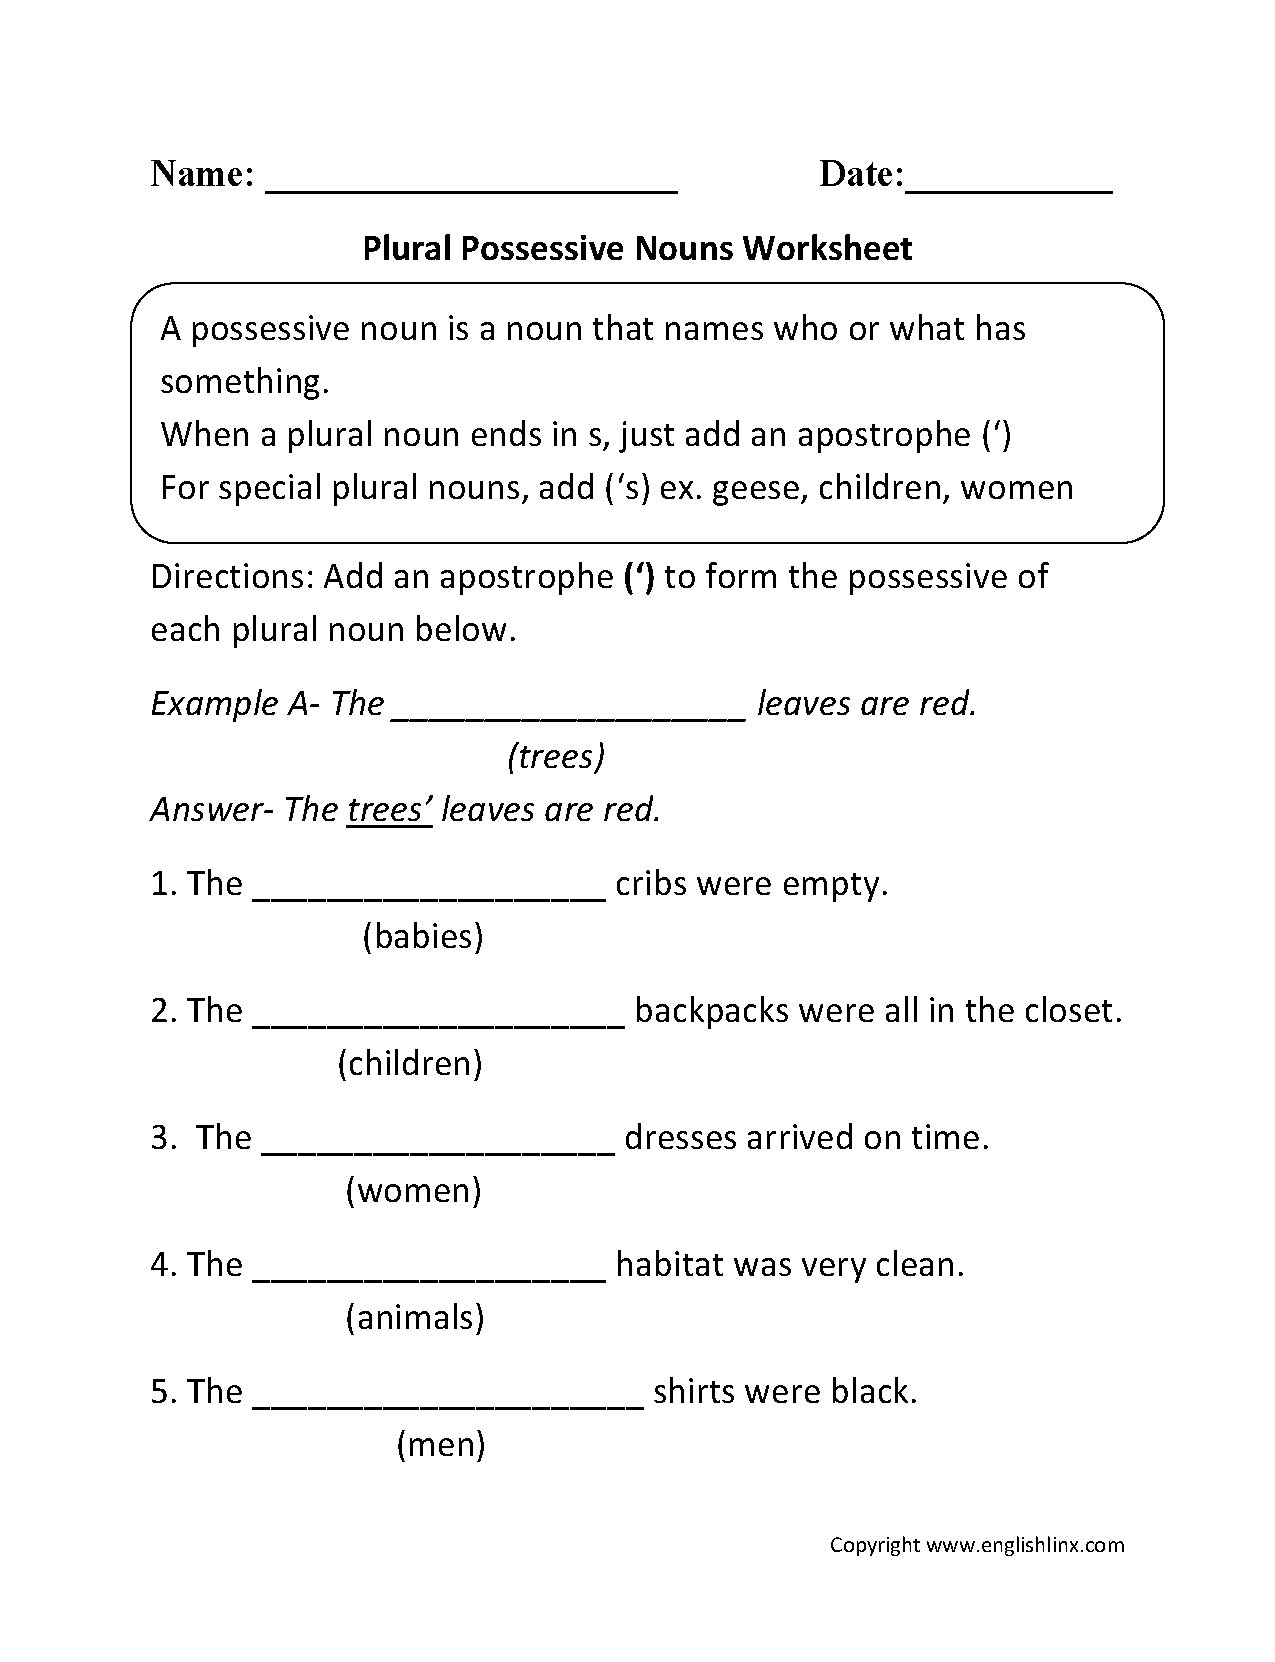 worksheet Plural Possessive Nouns Worksheets nouns worksheets possessive plural worksheets